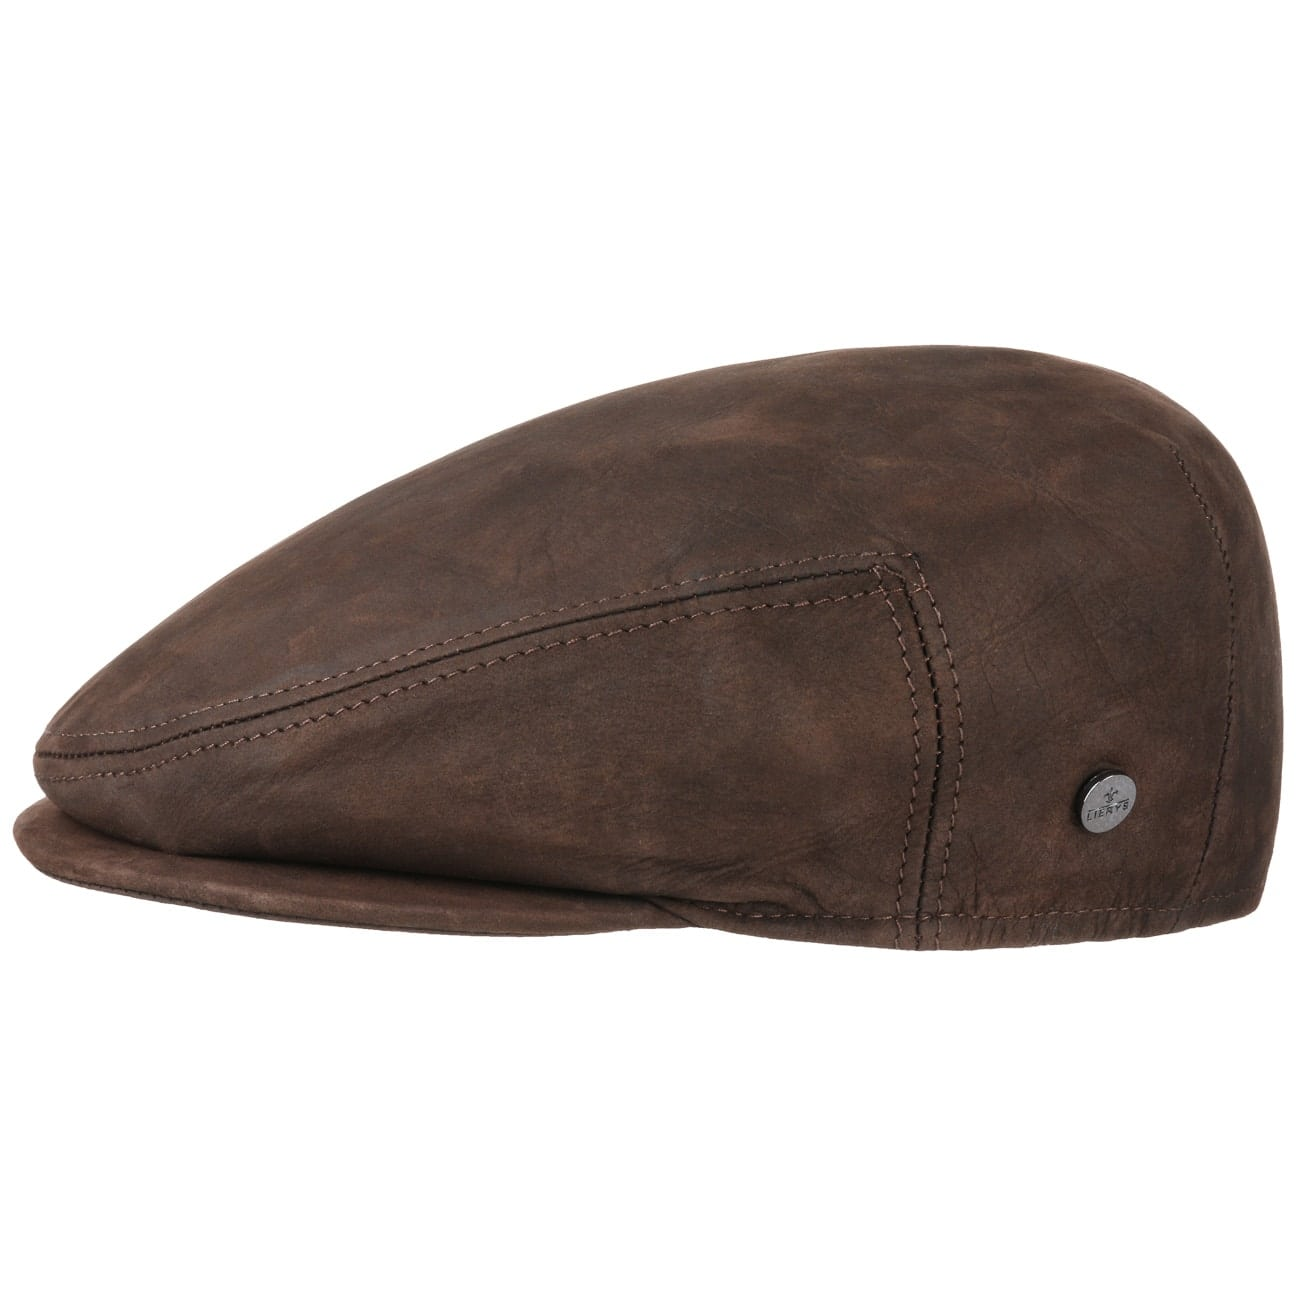 Leather hats are durable and able to withstand the elements. Available in a variety of shapes and styles there is a leather hat for any use. Leather Australian and outback hats are perfect for the outdoor enthusiast while leather ivy caps look great with city dweller attire. /5(13).